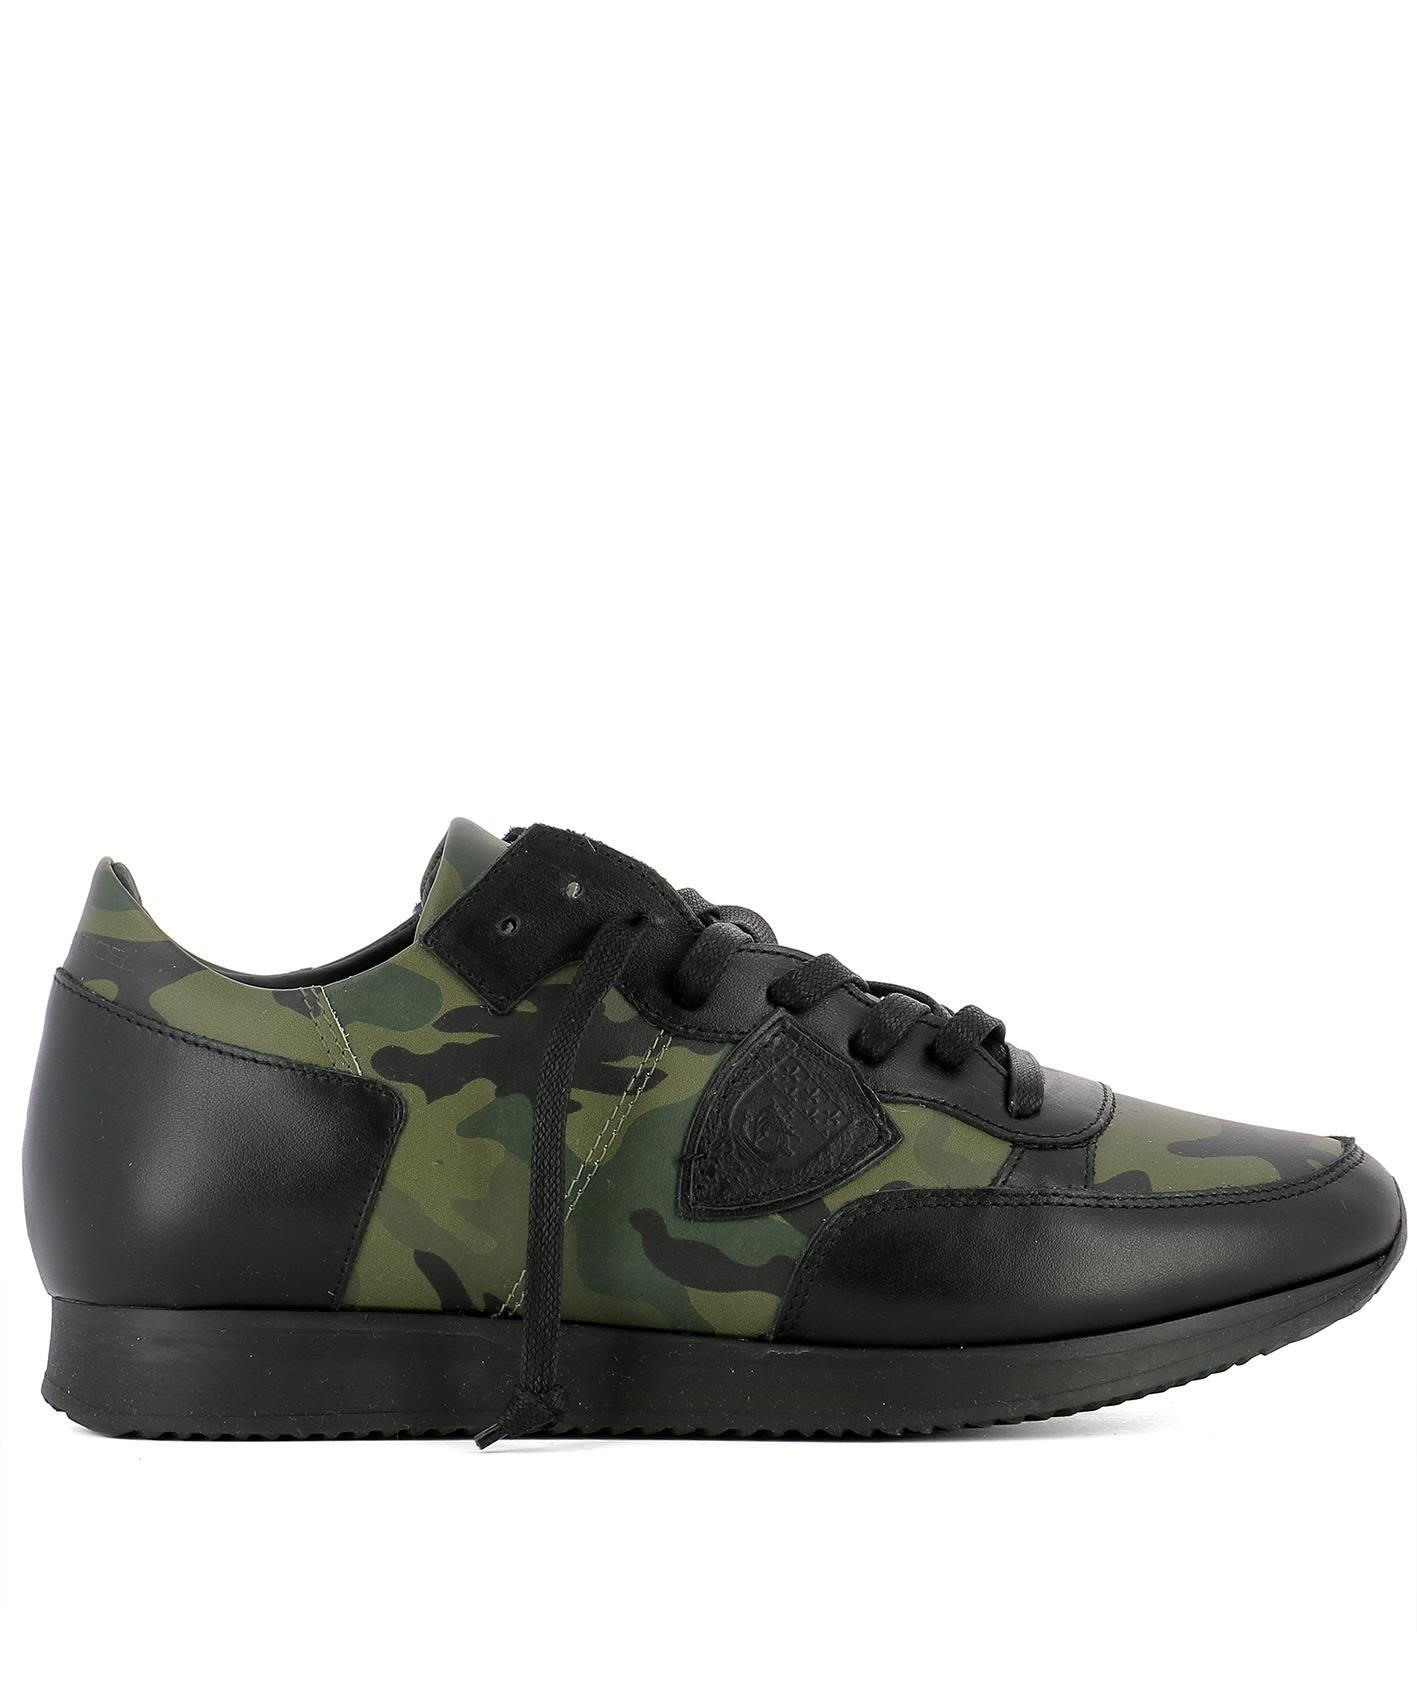 Philippe Model Green Leather Sneakers